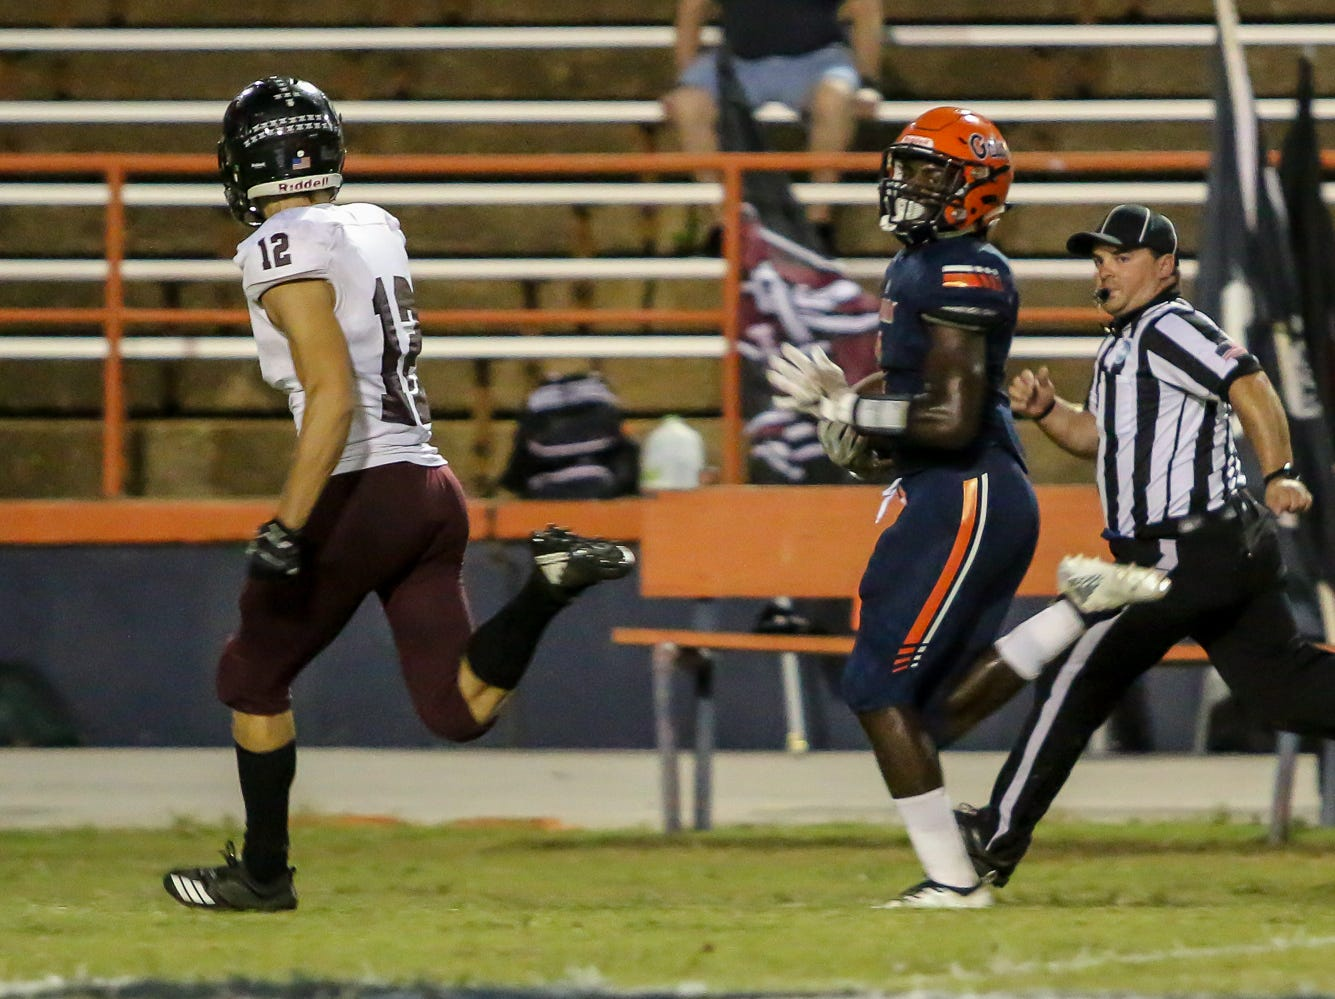 Navarre's Evan Gourley (12) can only watch as Escambia's Frank Peasant (1) speeds down the sideline for an 83-yard touchdown against Navarre in the homecoming game at Escambia High School on Friday, October 5, 2018.